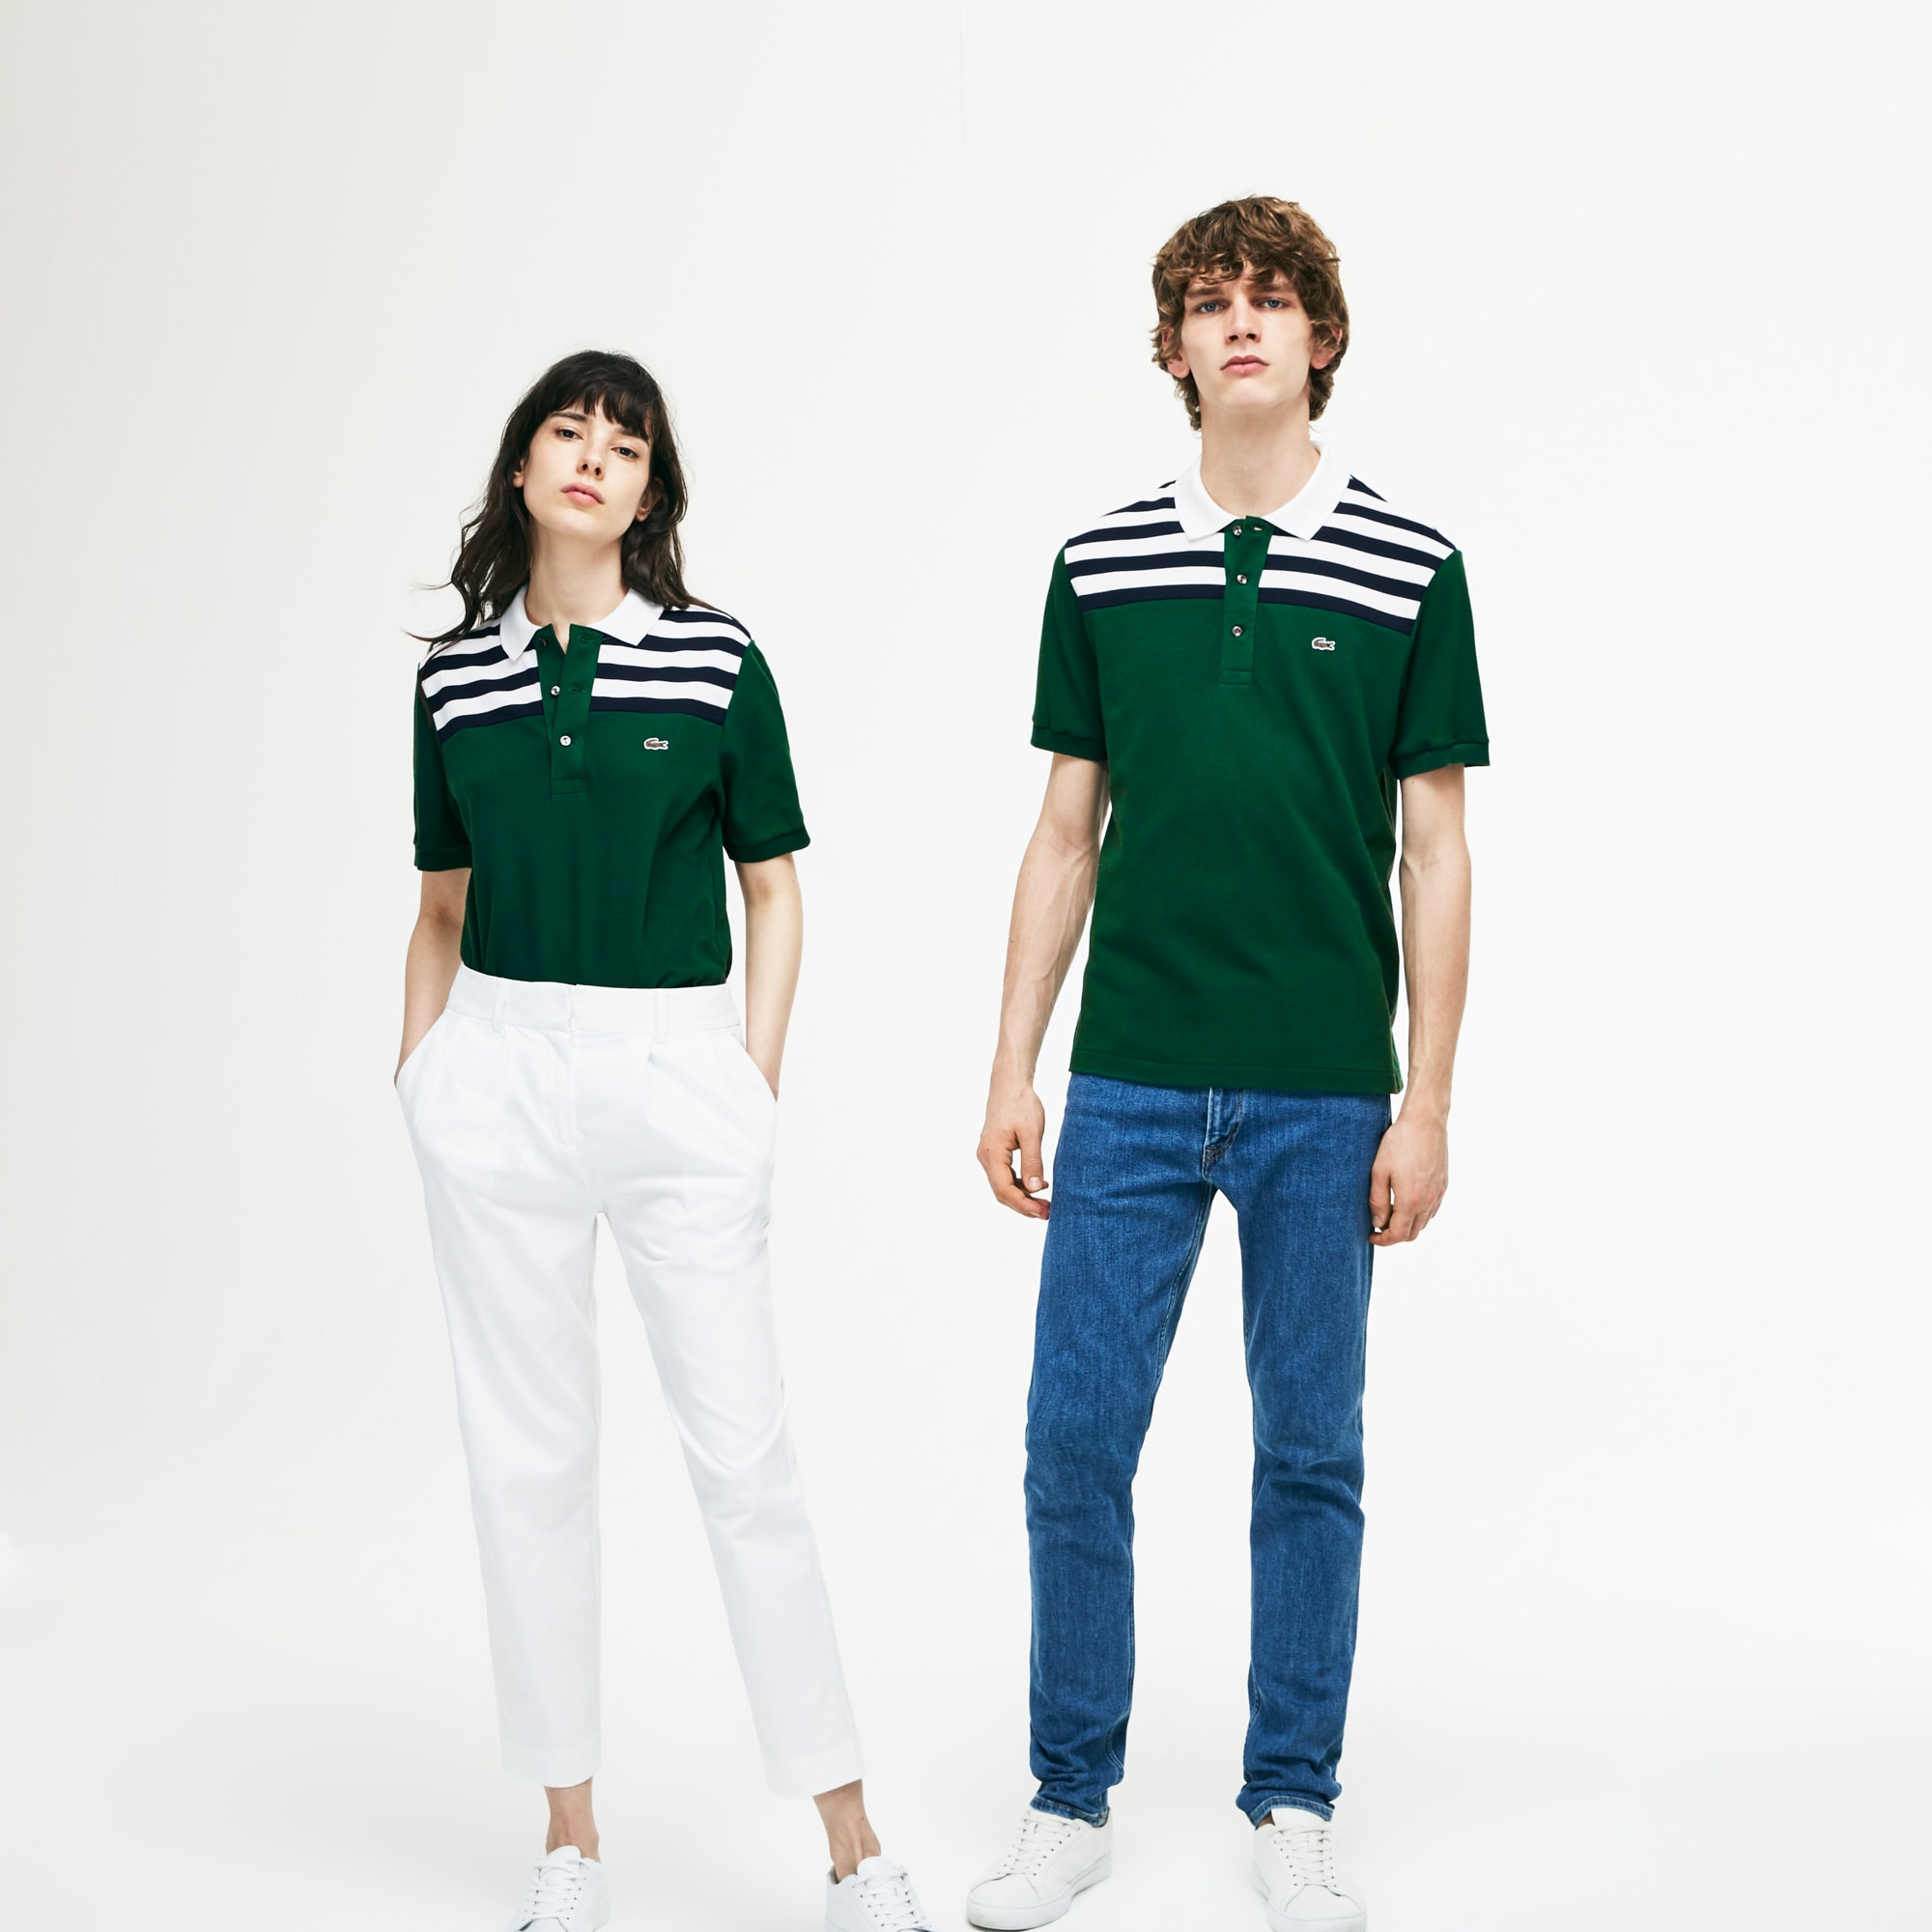 Unisex Lacoste L.12.12 1980s Revival 85th Anniversary Limited Edition Piqué Polo Shirt